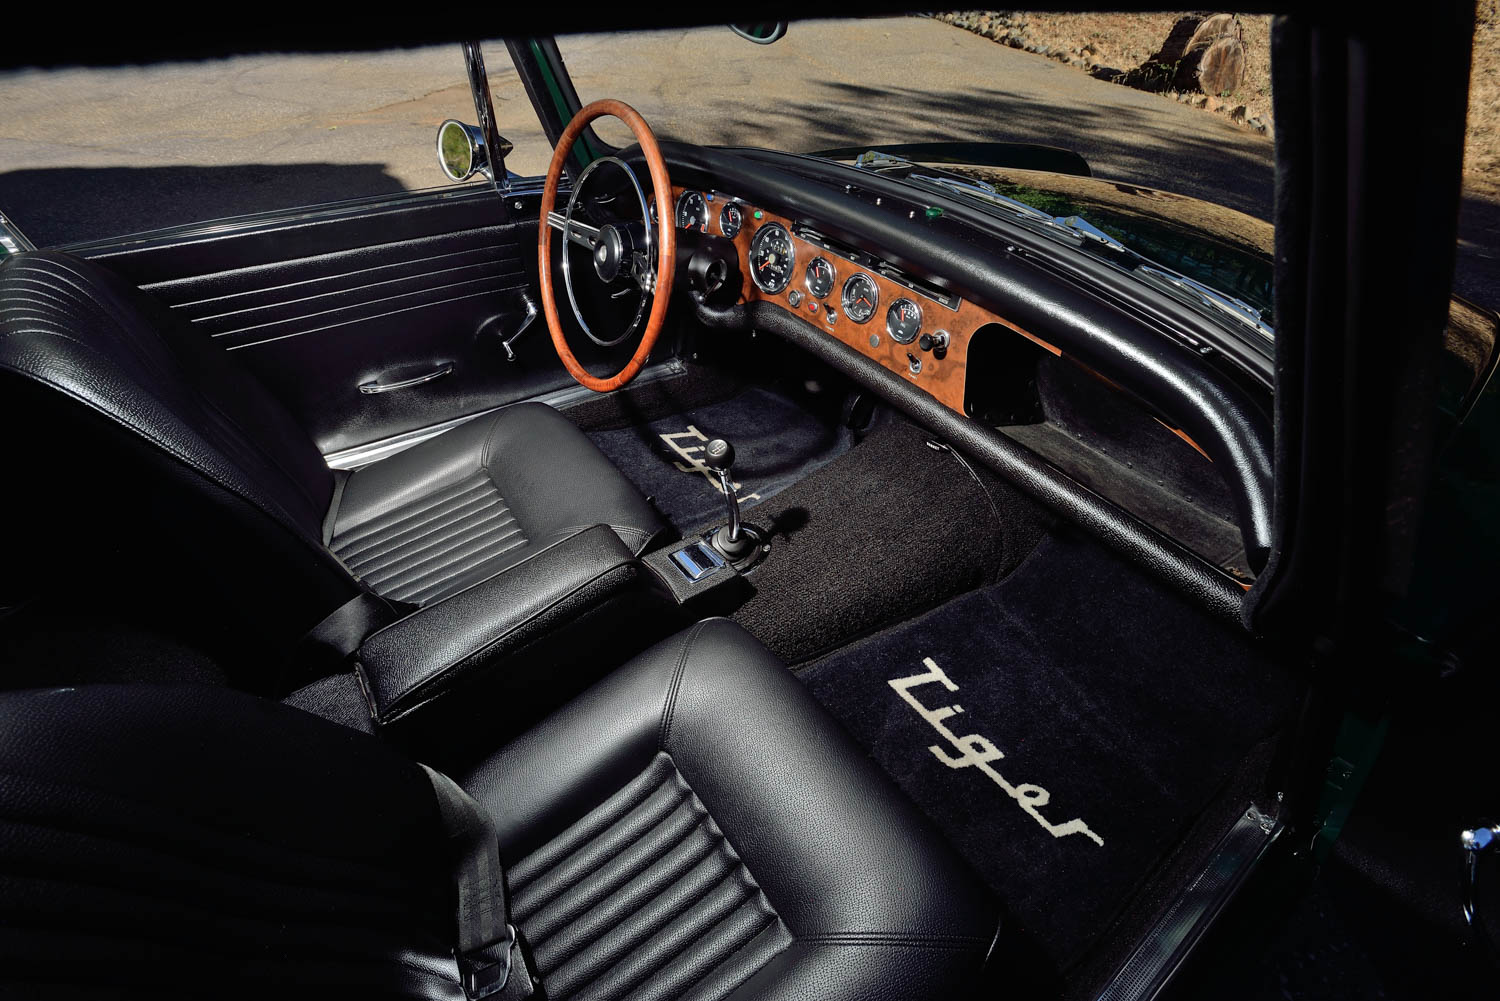 1967 Sunbeam Tiger MKII interior